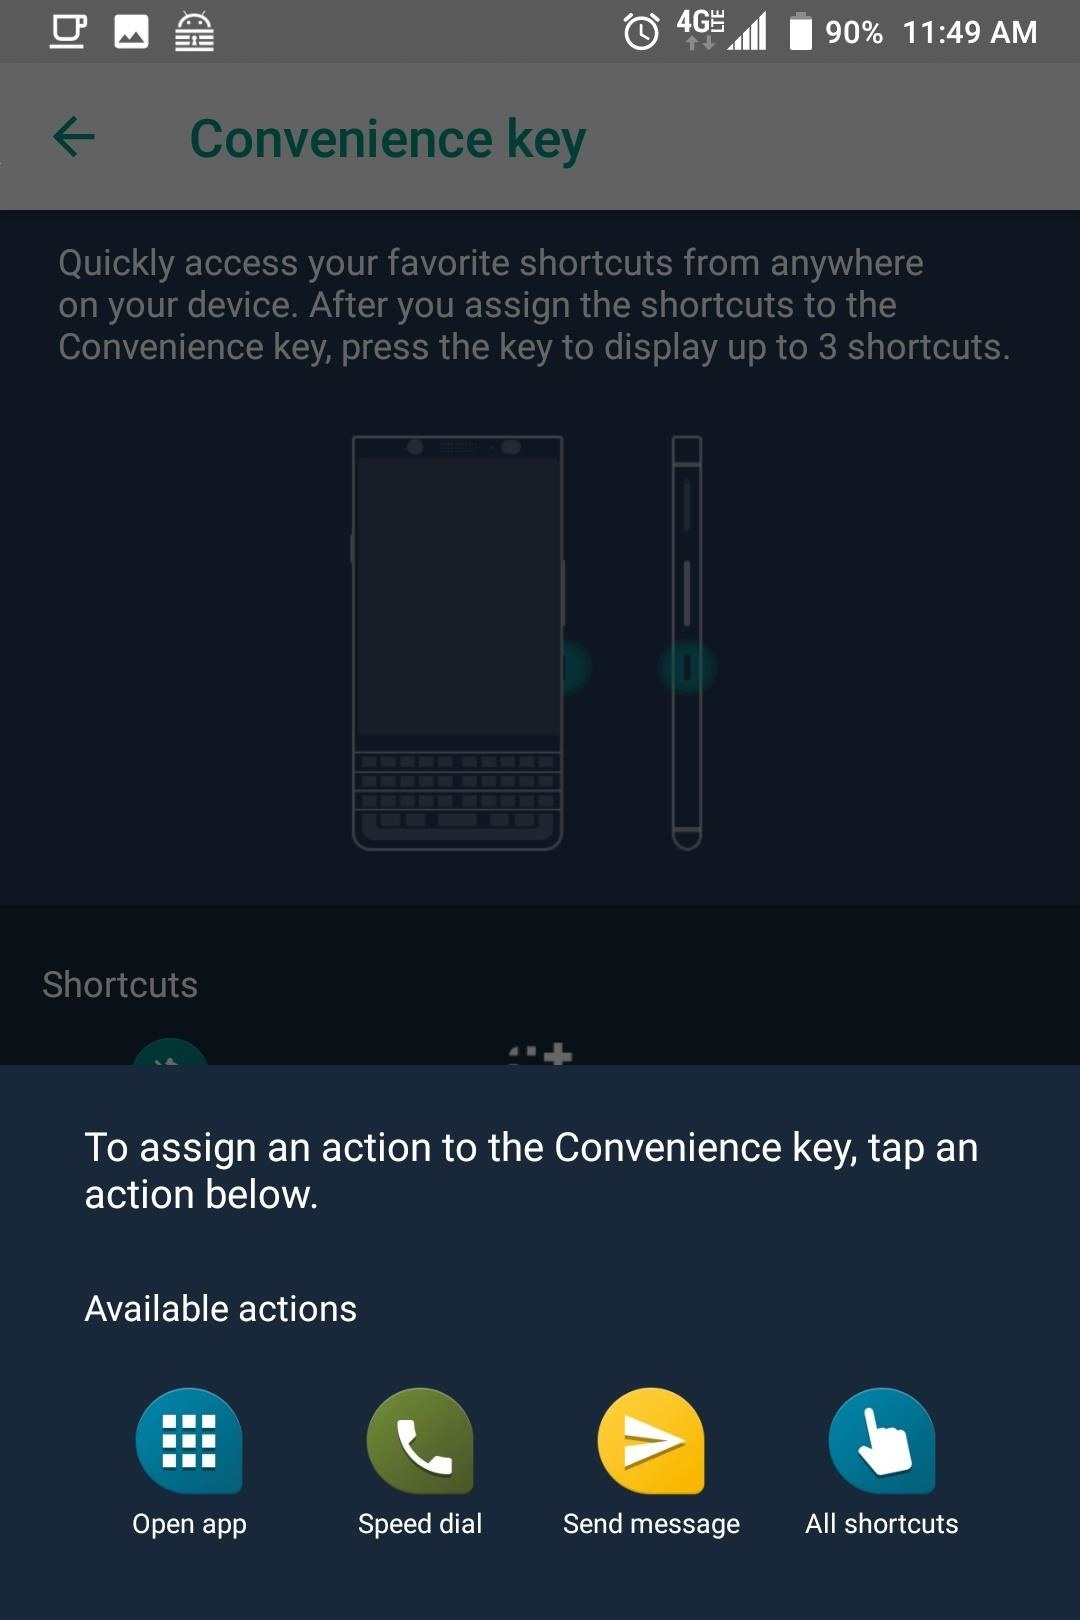 Make the BlackBerry KEY2's Convenience Key Launch Different Apps Based on Your Location